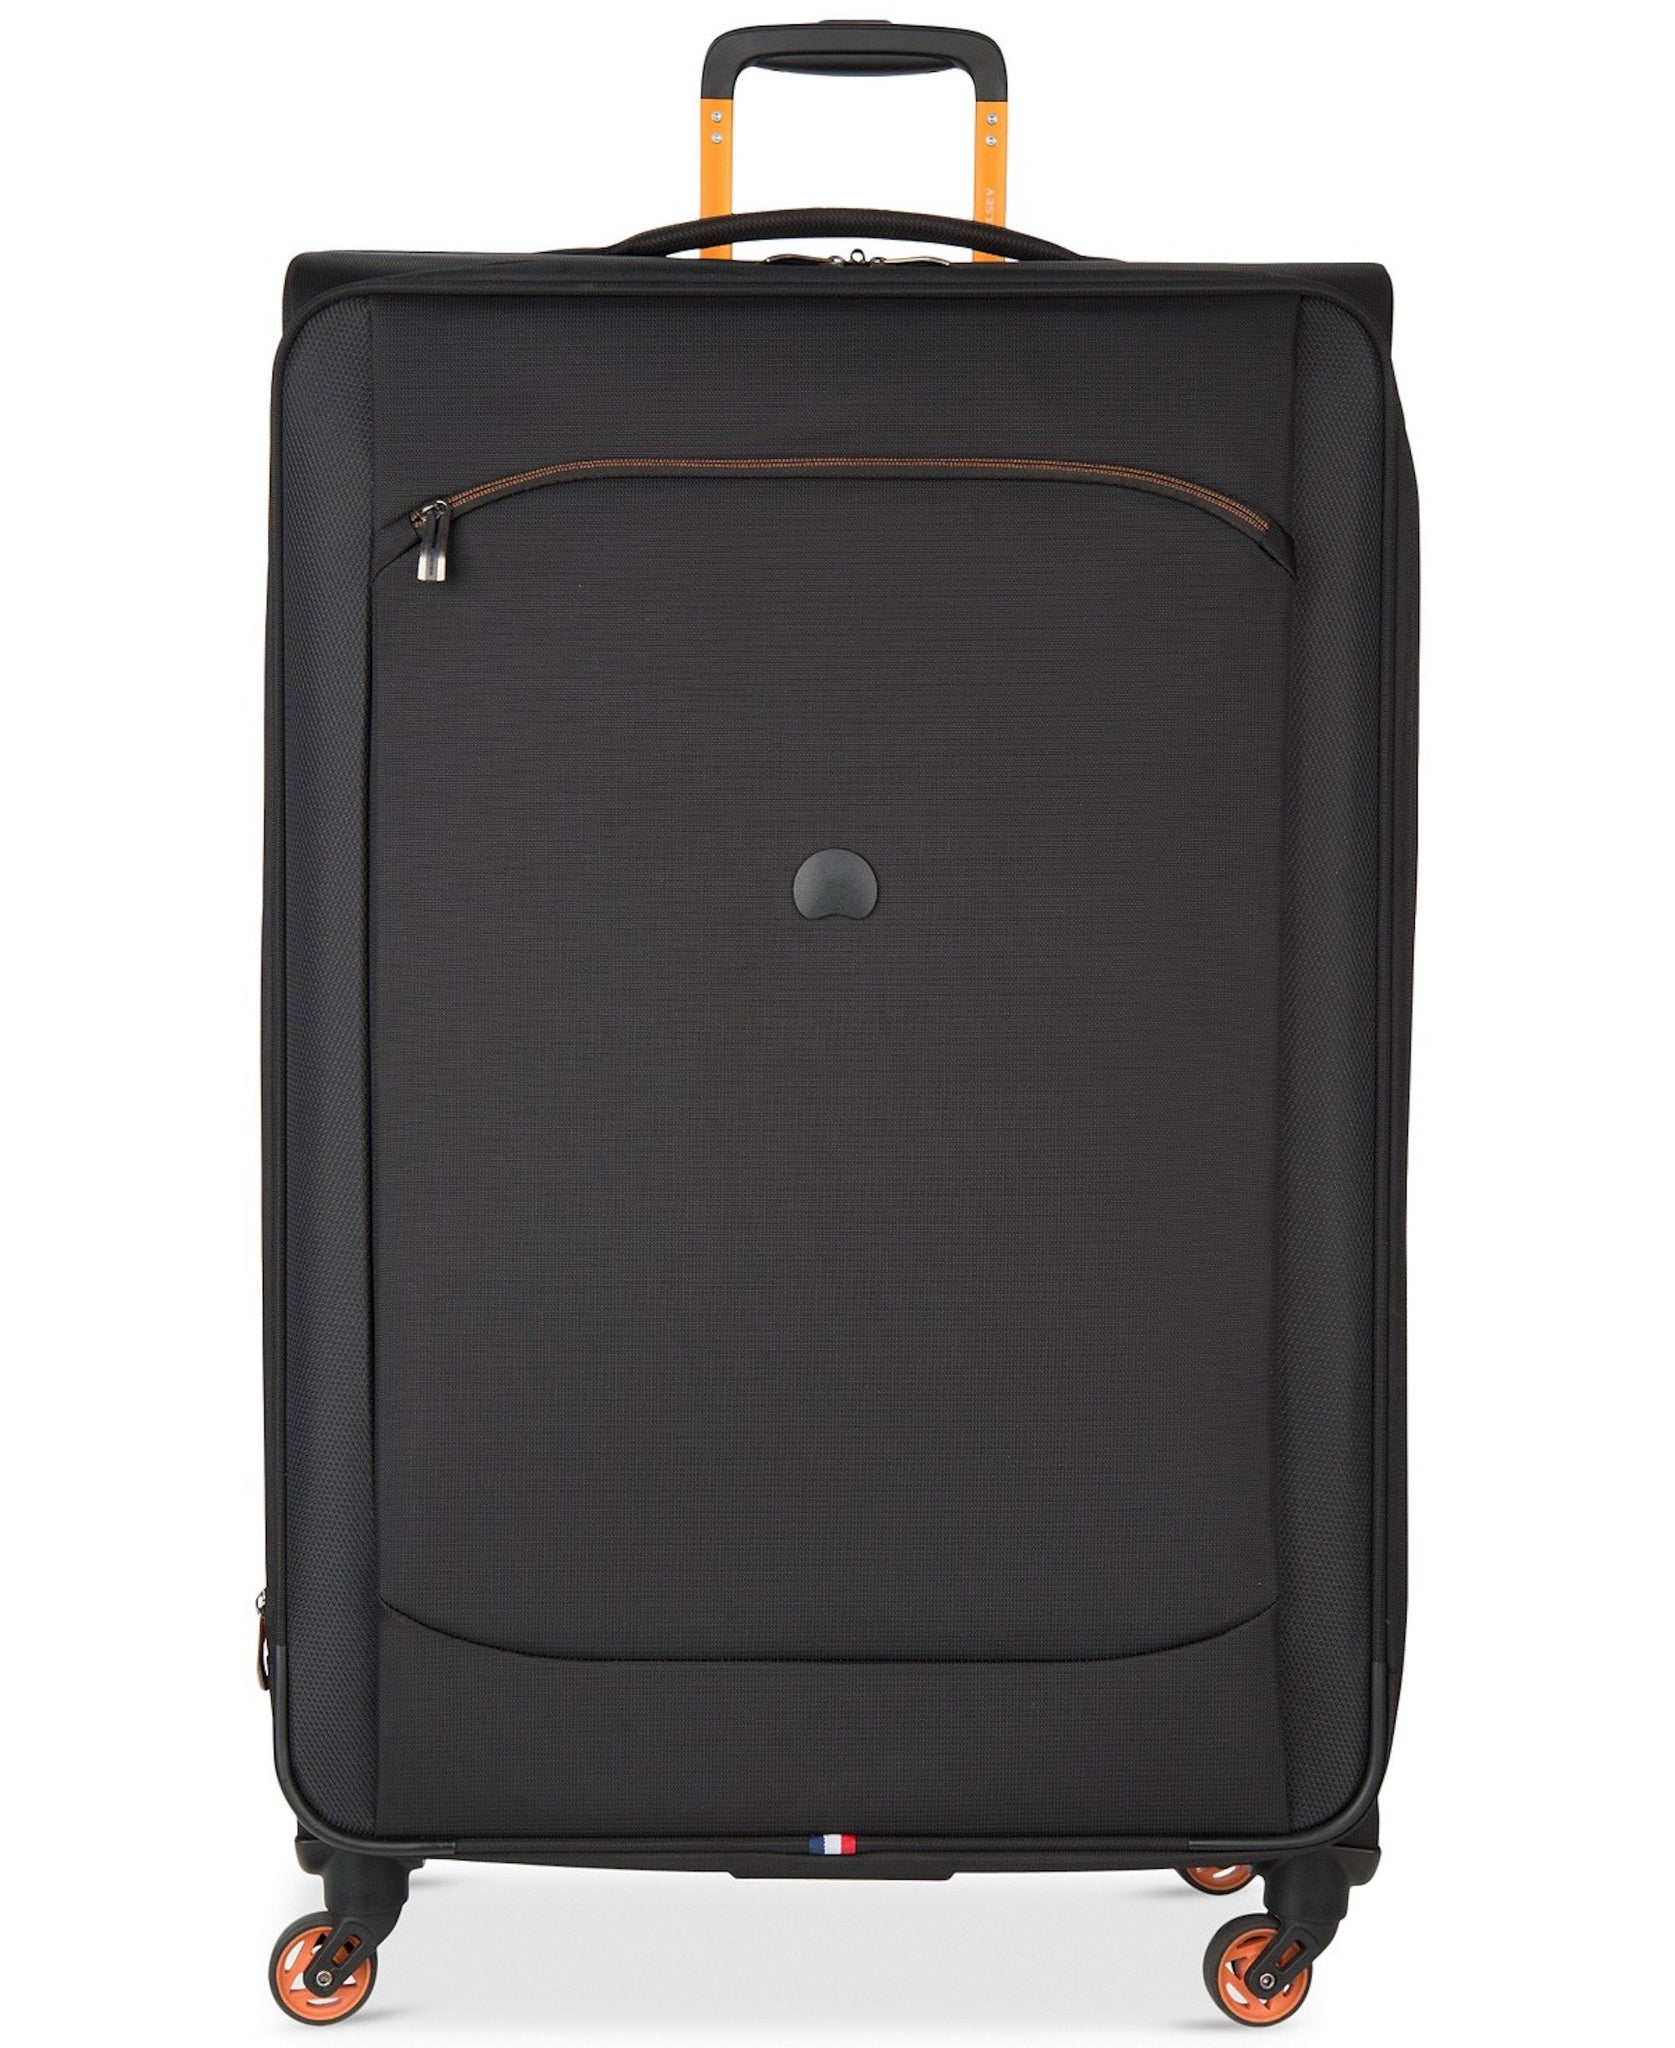 "$360 Delsey 29"" Hyperlite 2.0 Expandable Spinner Suitcase Luggage Black"